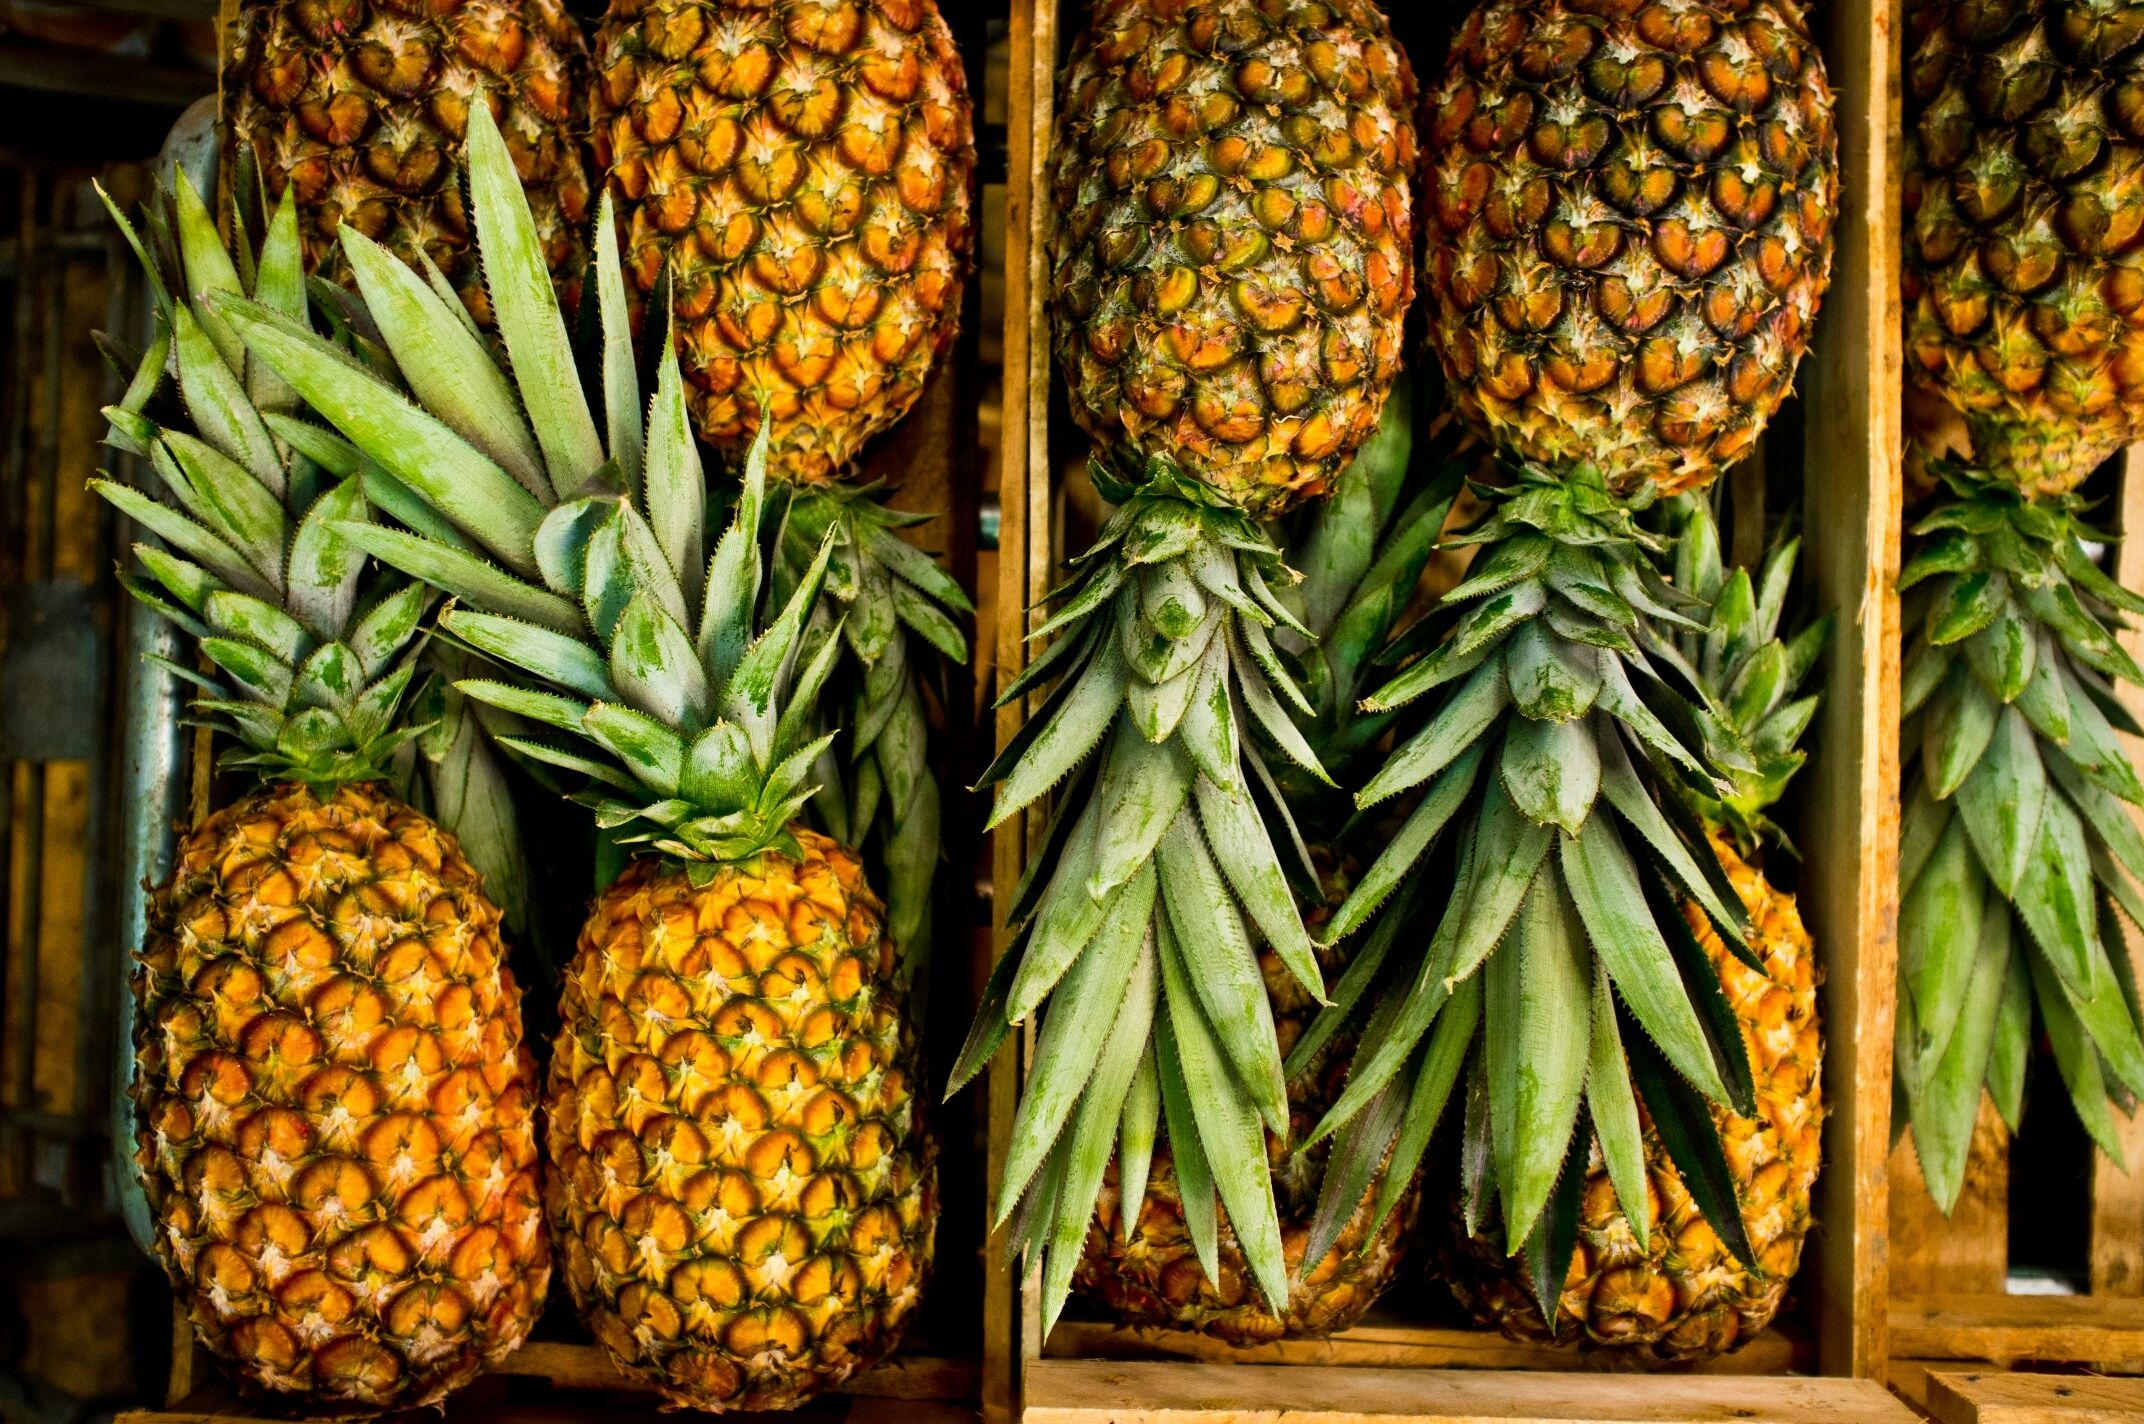 high angle view of pineapples in crate 587191515 59543d903df78cdc298933cc